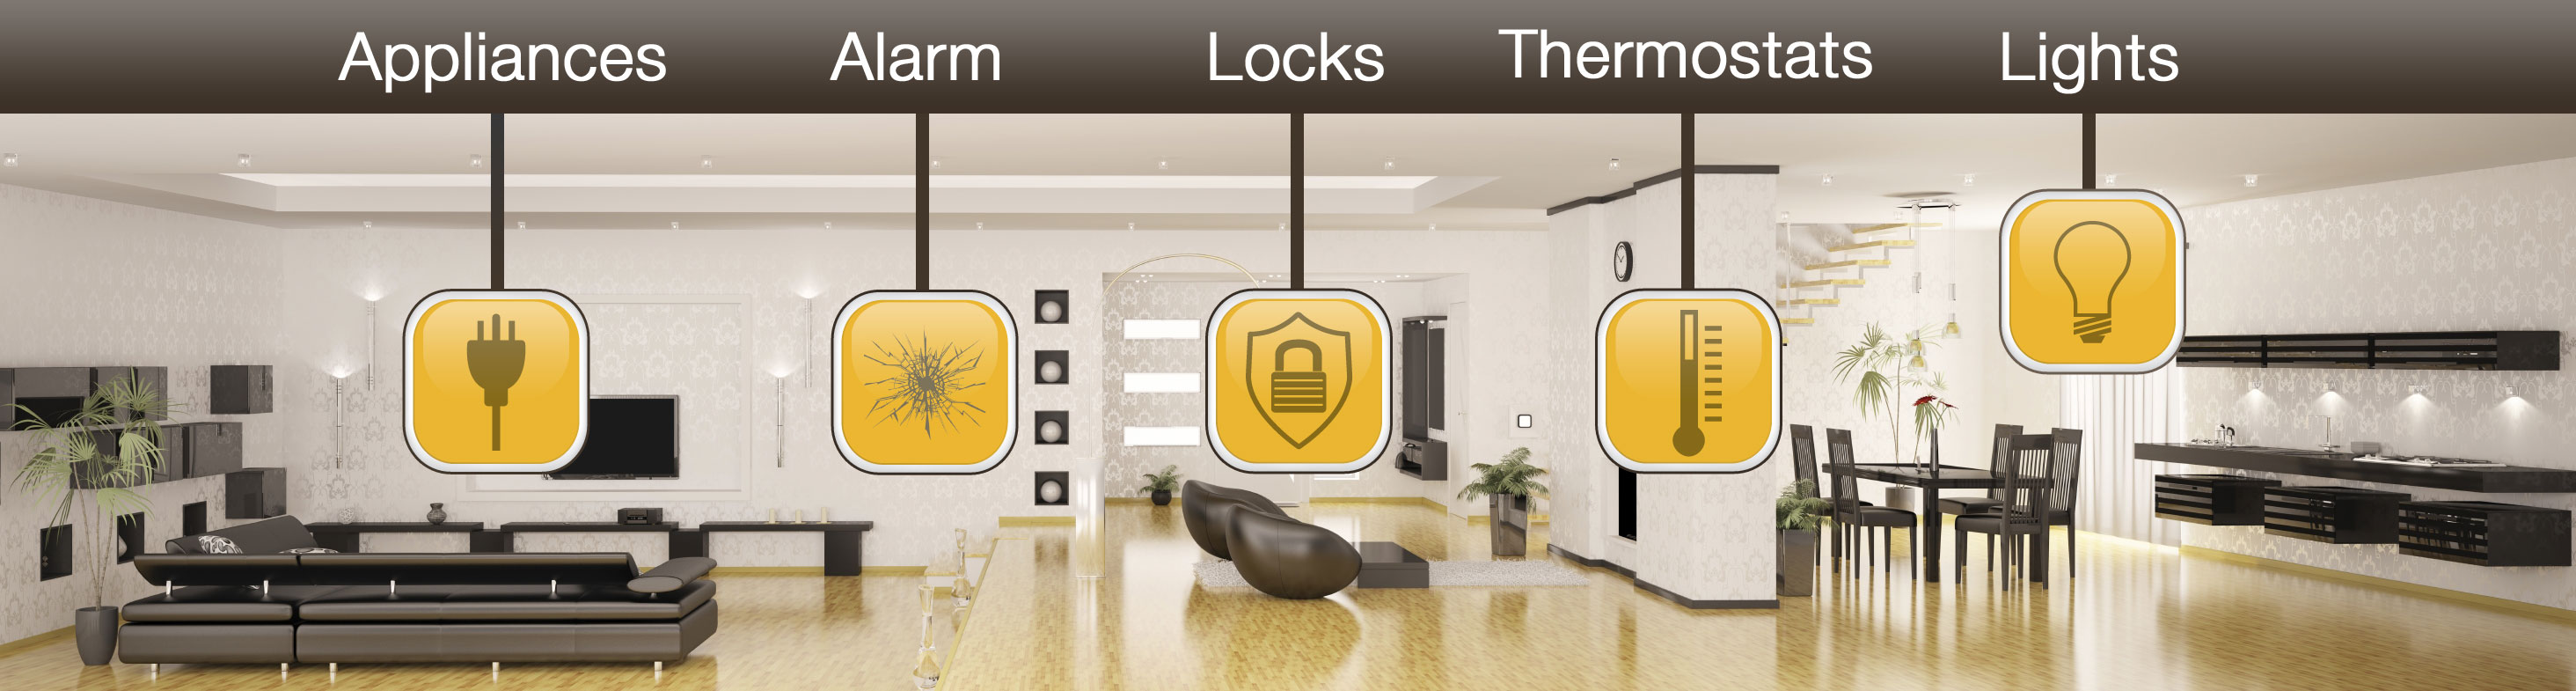 E-home Automation By Design Part - 24: ... 2928 × 785 In Mentorworld-home-automation